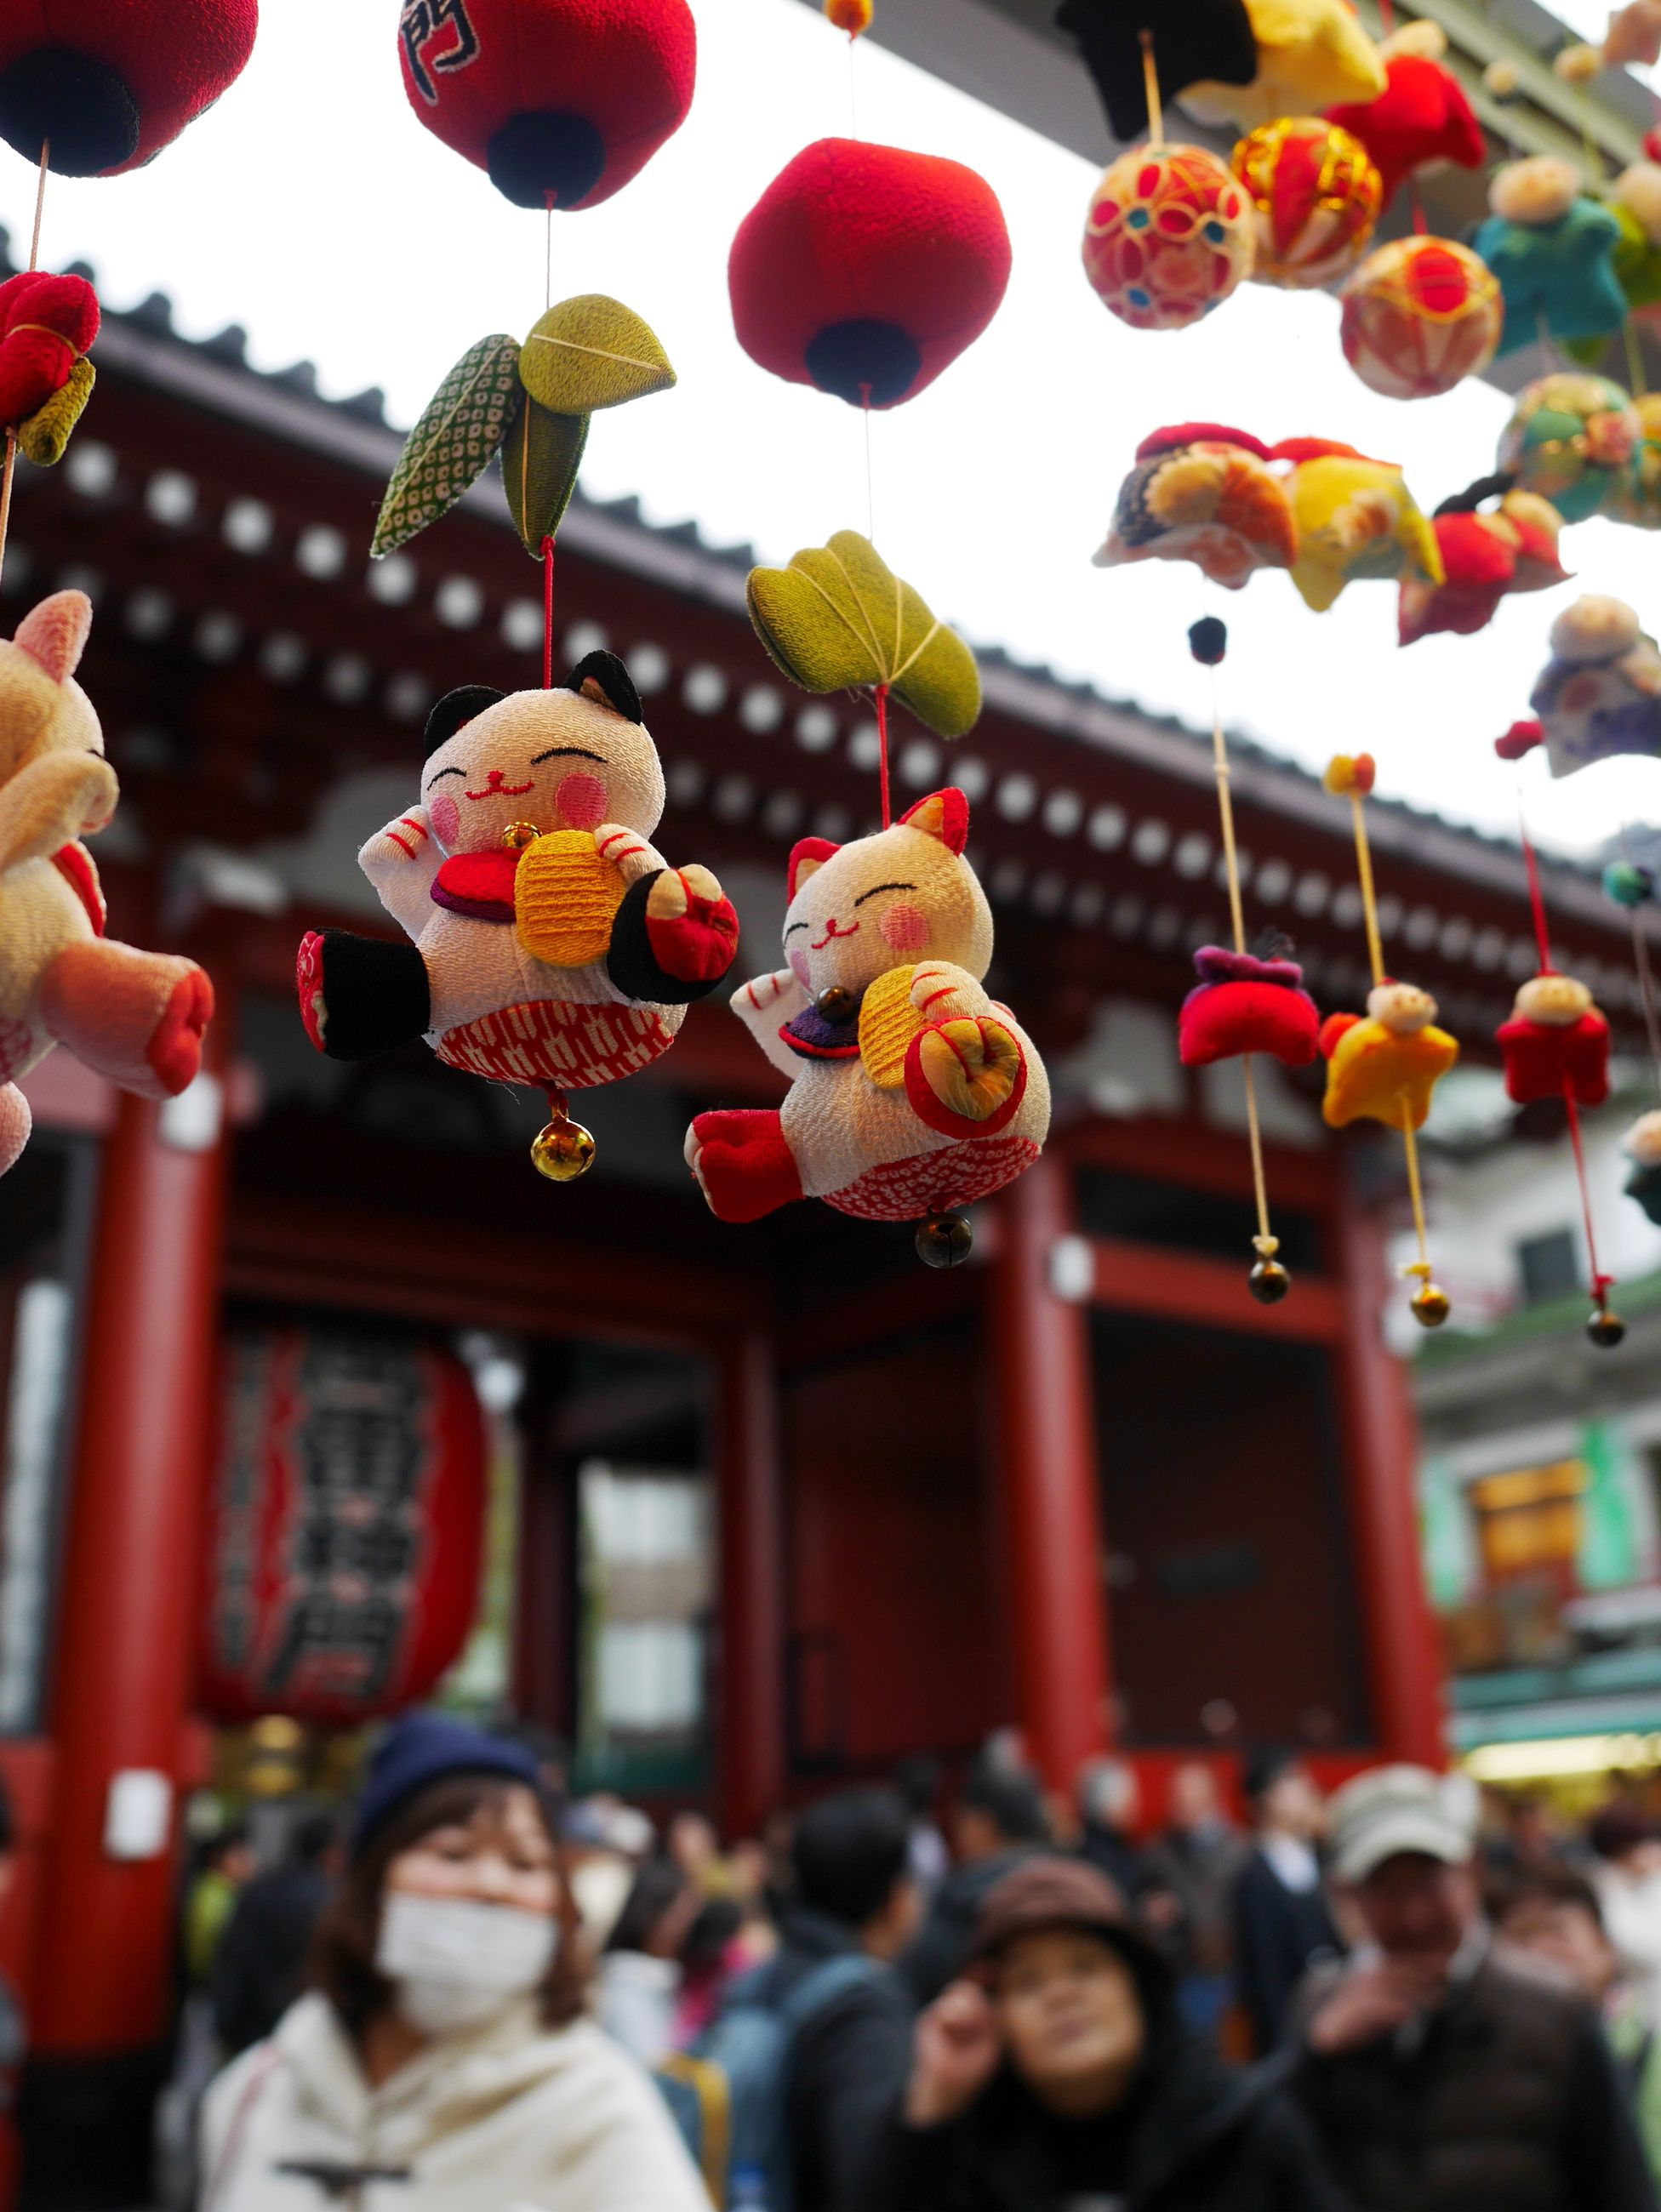 decoration, celebration, cultures, architecture, focus on foreground, tradition, built structure, person, large group of people, incidental people, lifestyles, illuminated, hanging, building exterior, leisure activity, men, lantern, city, multi colored